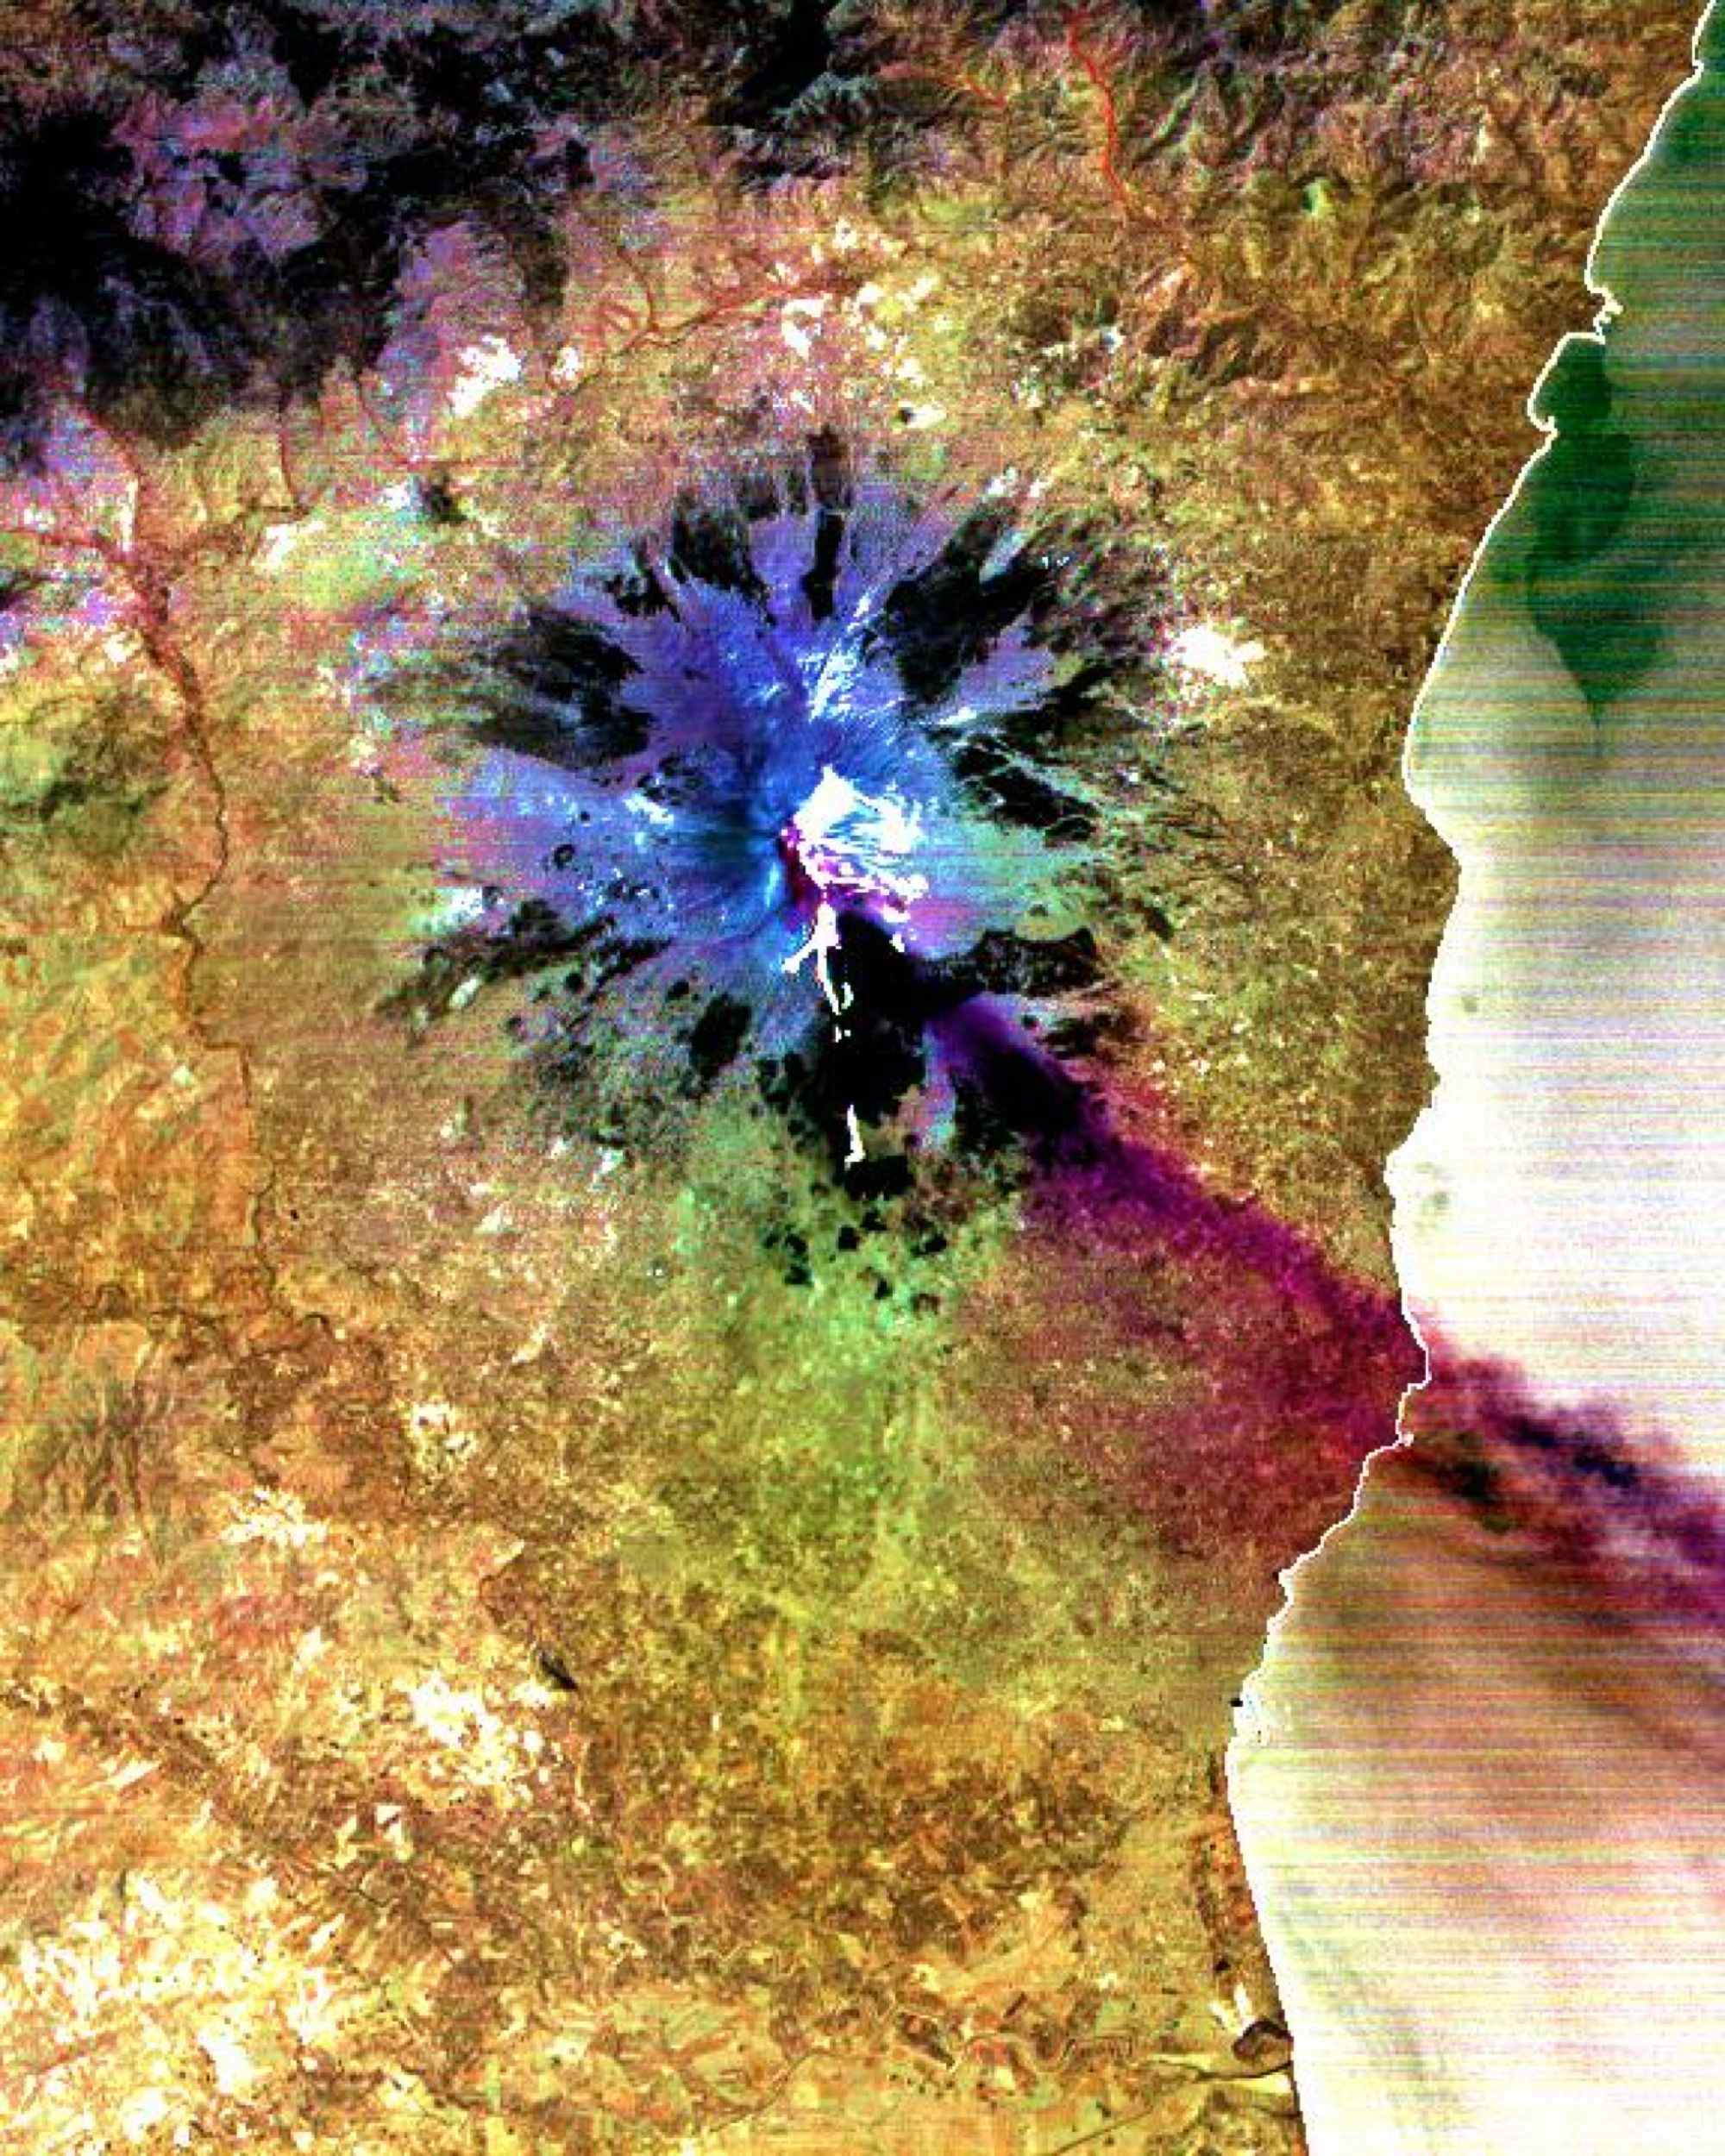 This image was acquired by NASA's Terra satellite on July 29, 2001 and shows a sulfur dioxide plume (in purple) drifting over the city of Catania.